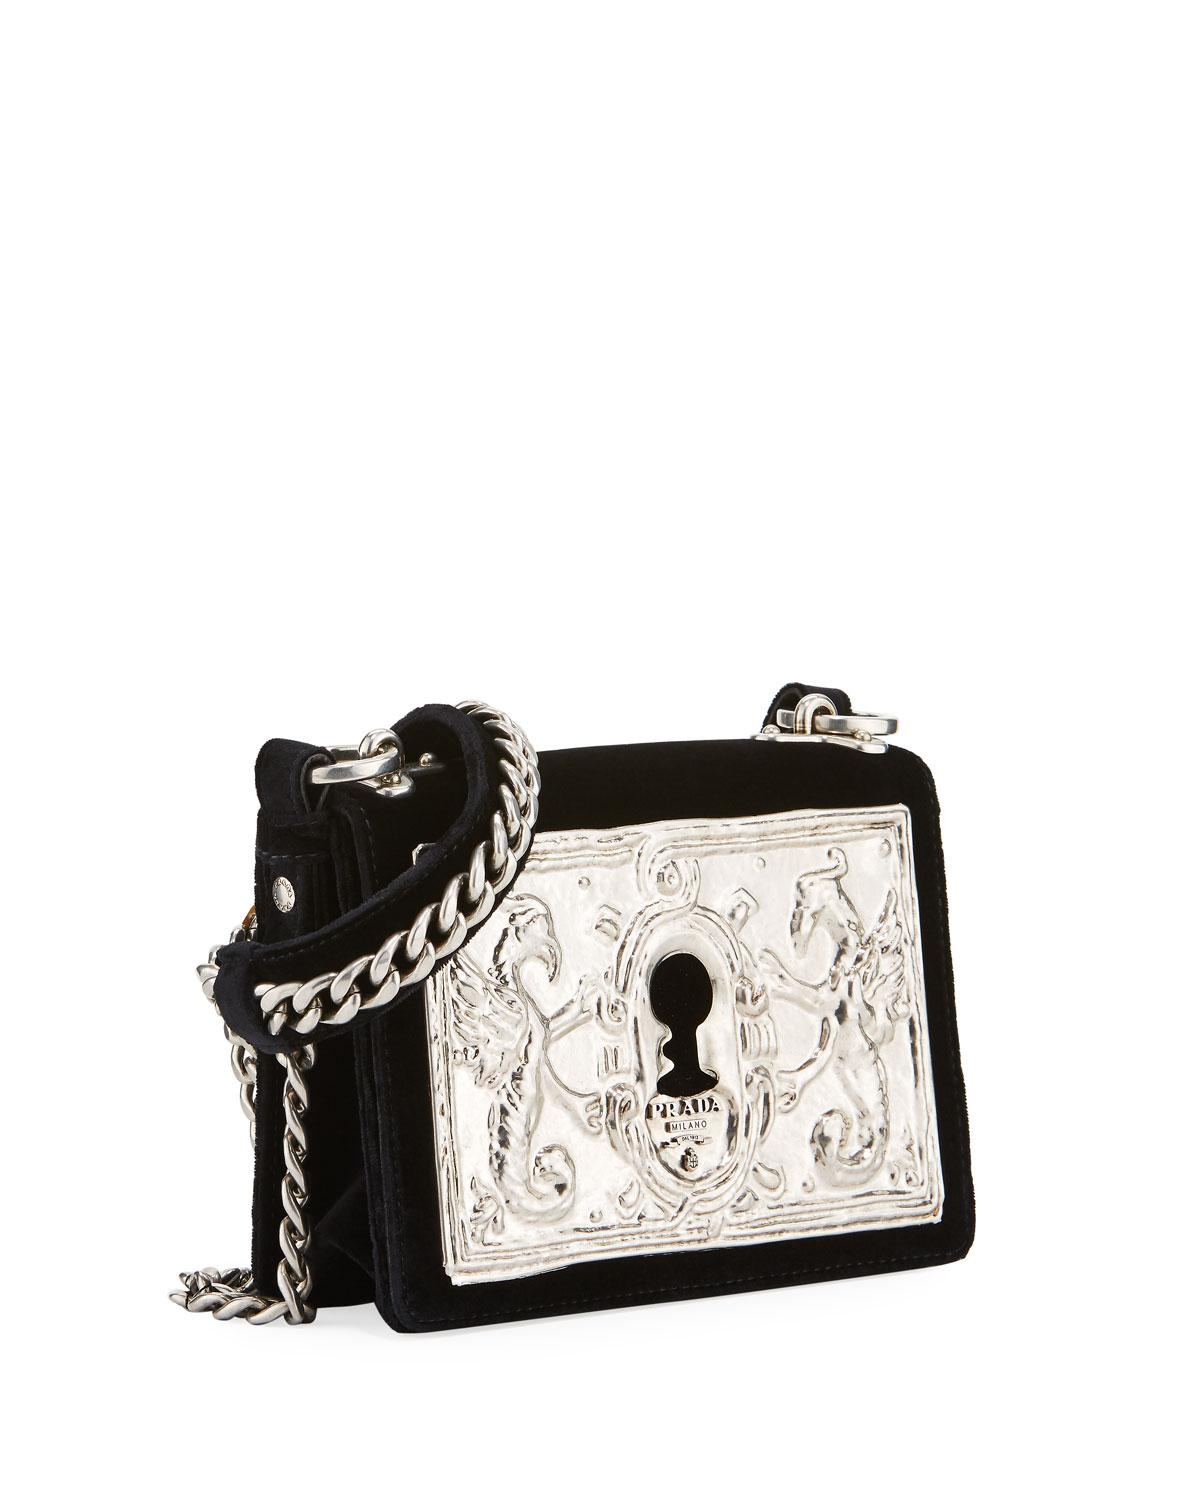 f5d5c13b976b Lyst - Prada Cahier Small Lock Velvet Trunk Crossbody Bag in Black